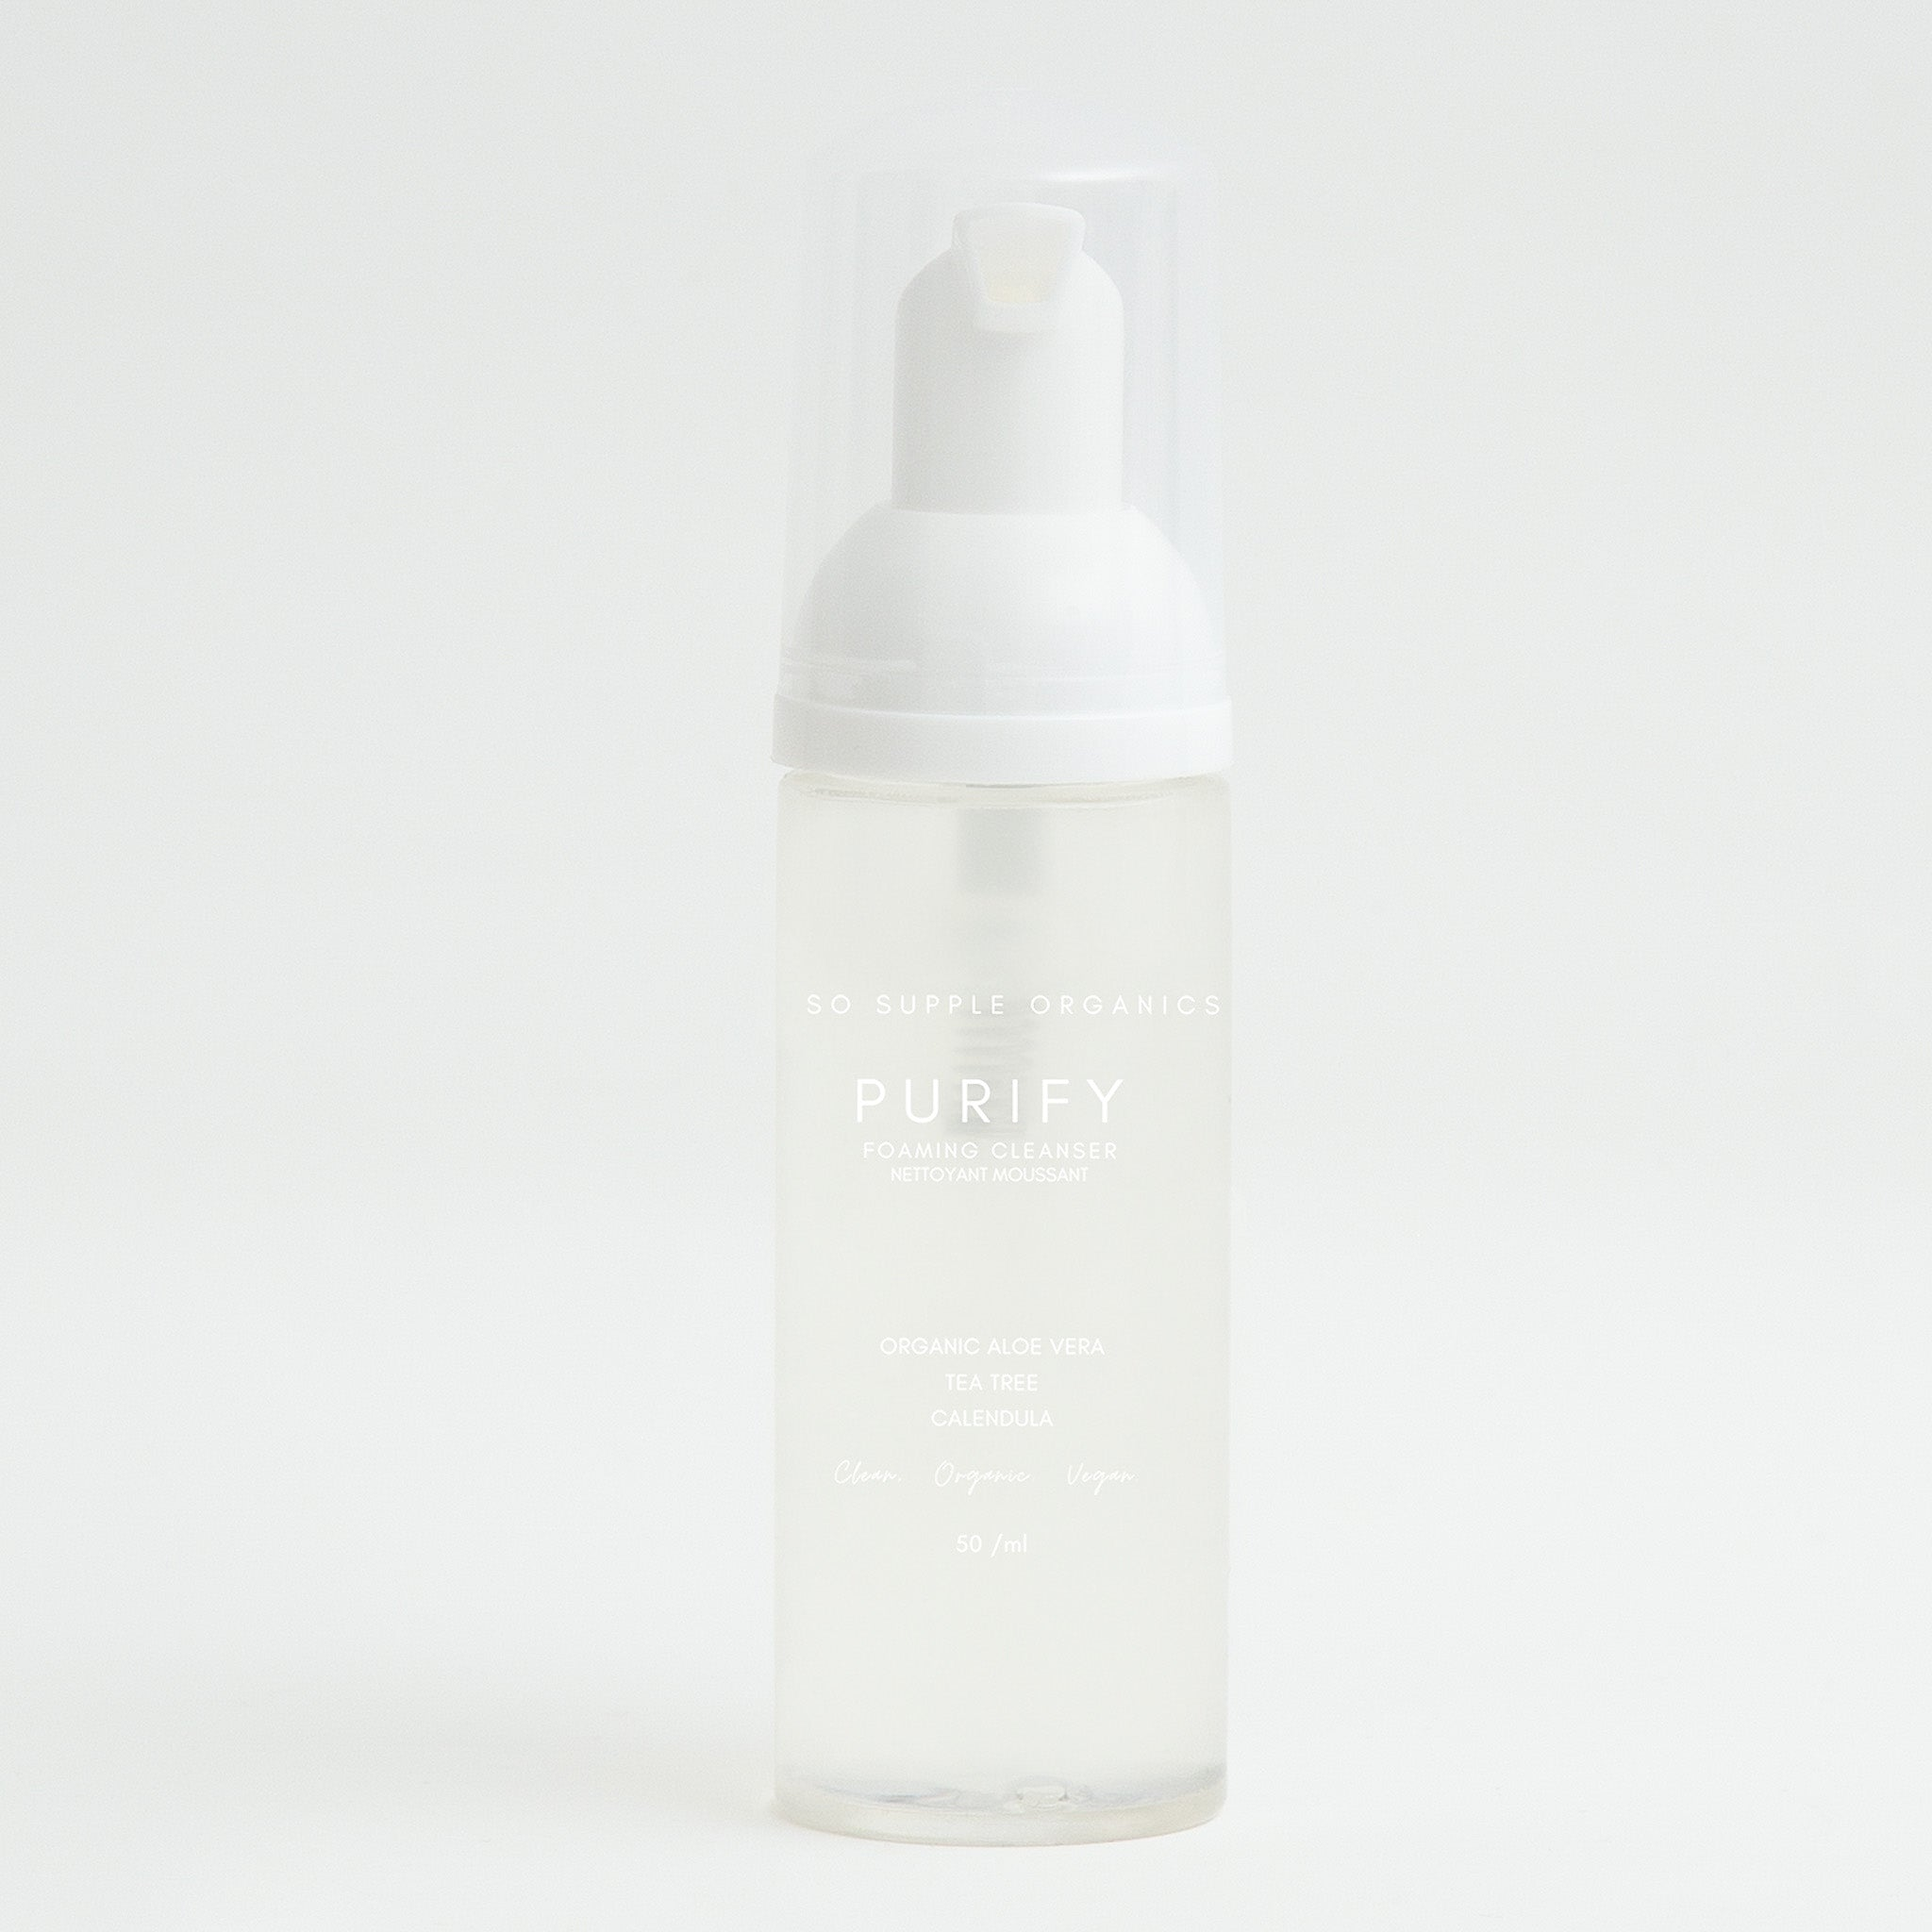 PURIFY Foaming Cleanser